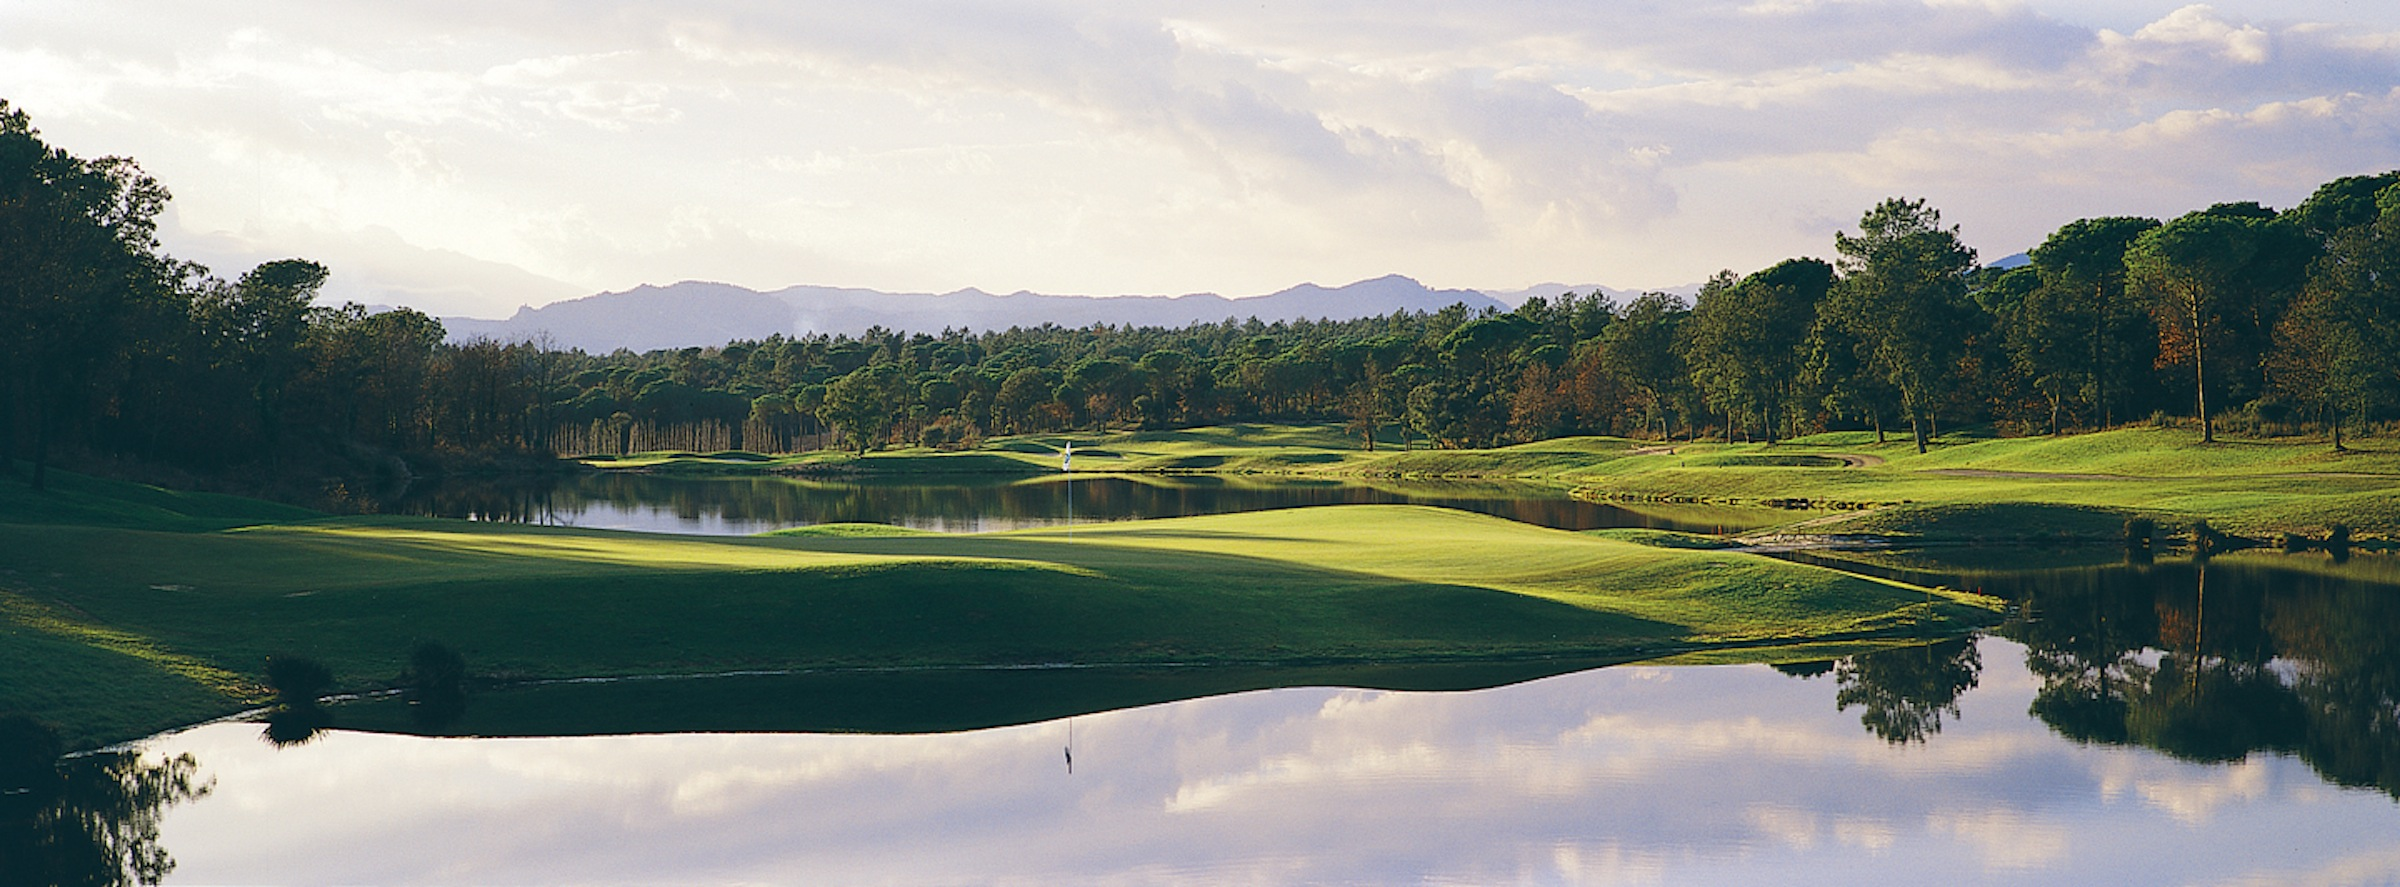 10 Reasons to take a golf holiday on Spain's Costa Brava